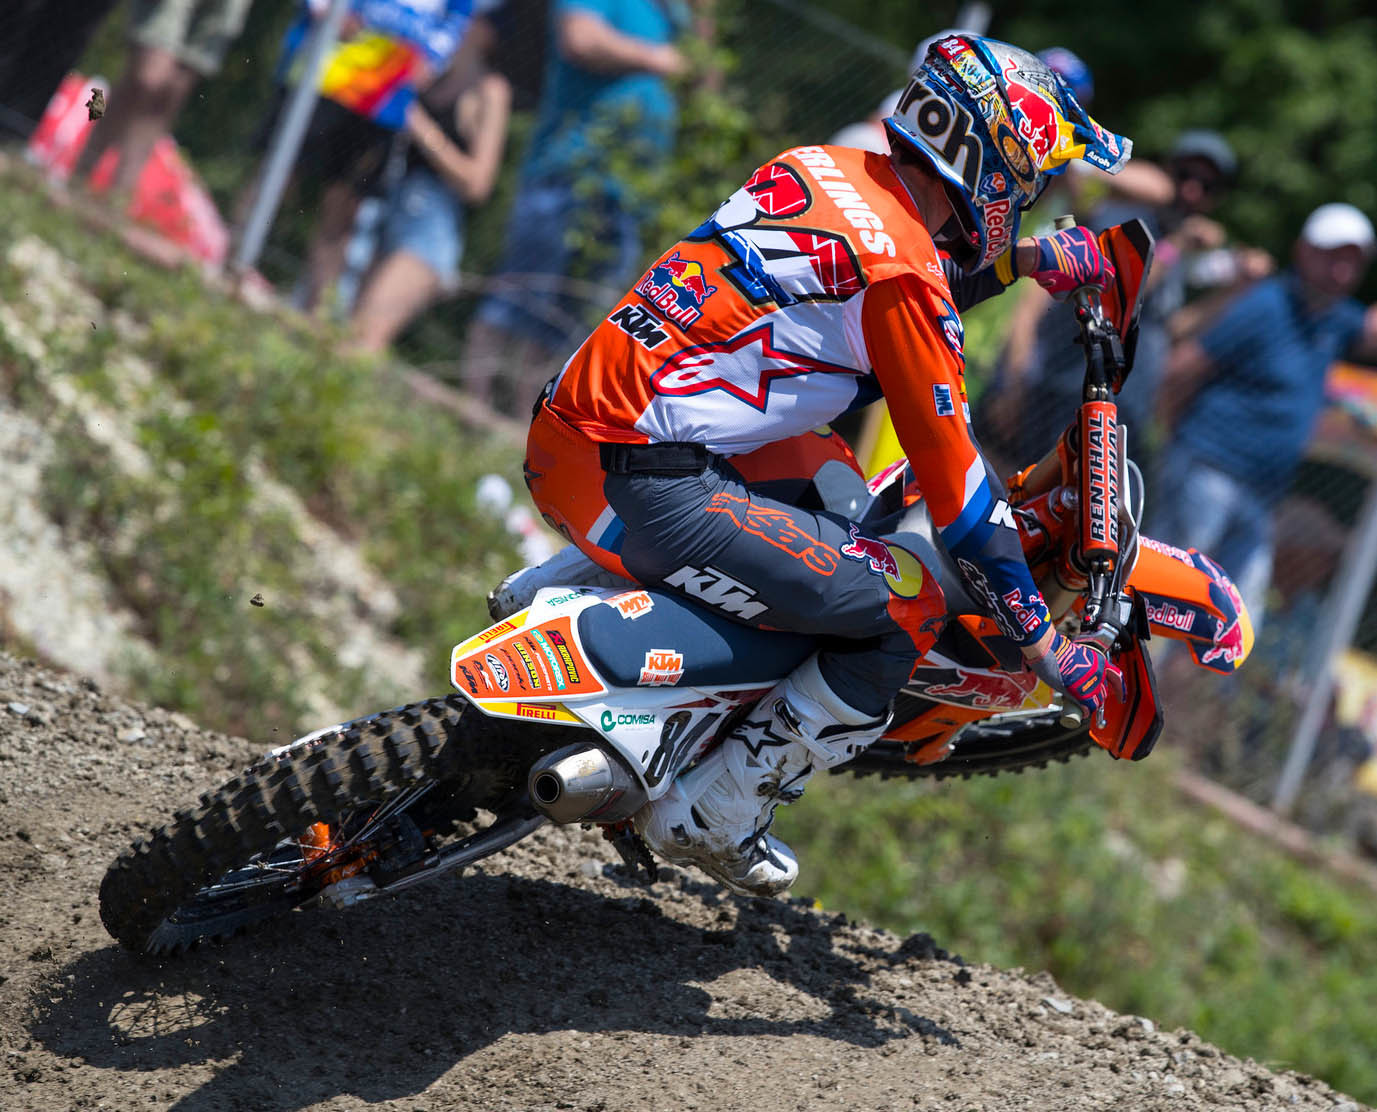 Herlings-side-colour.jpg#asset:18373